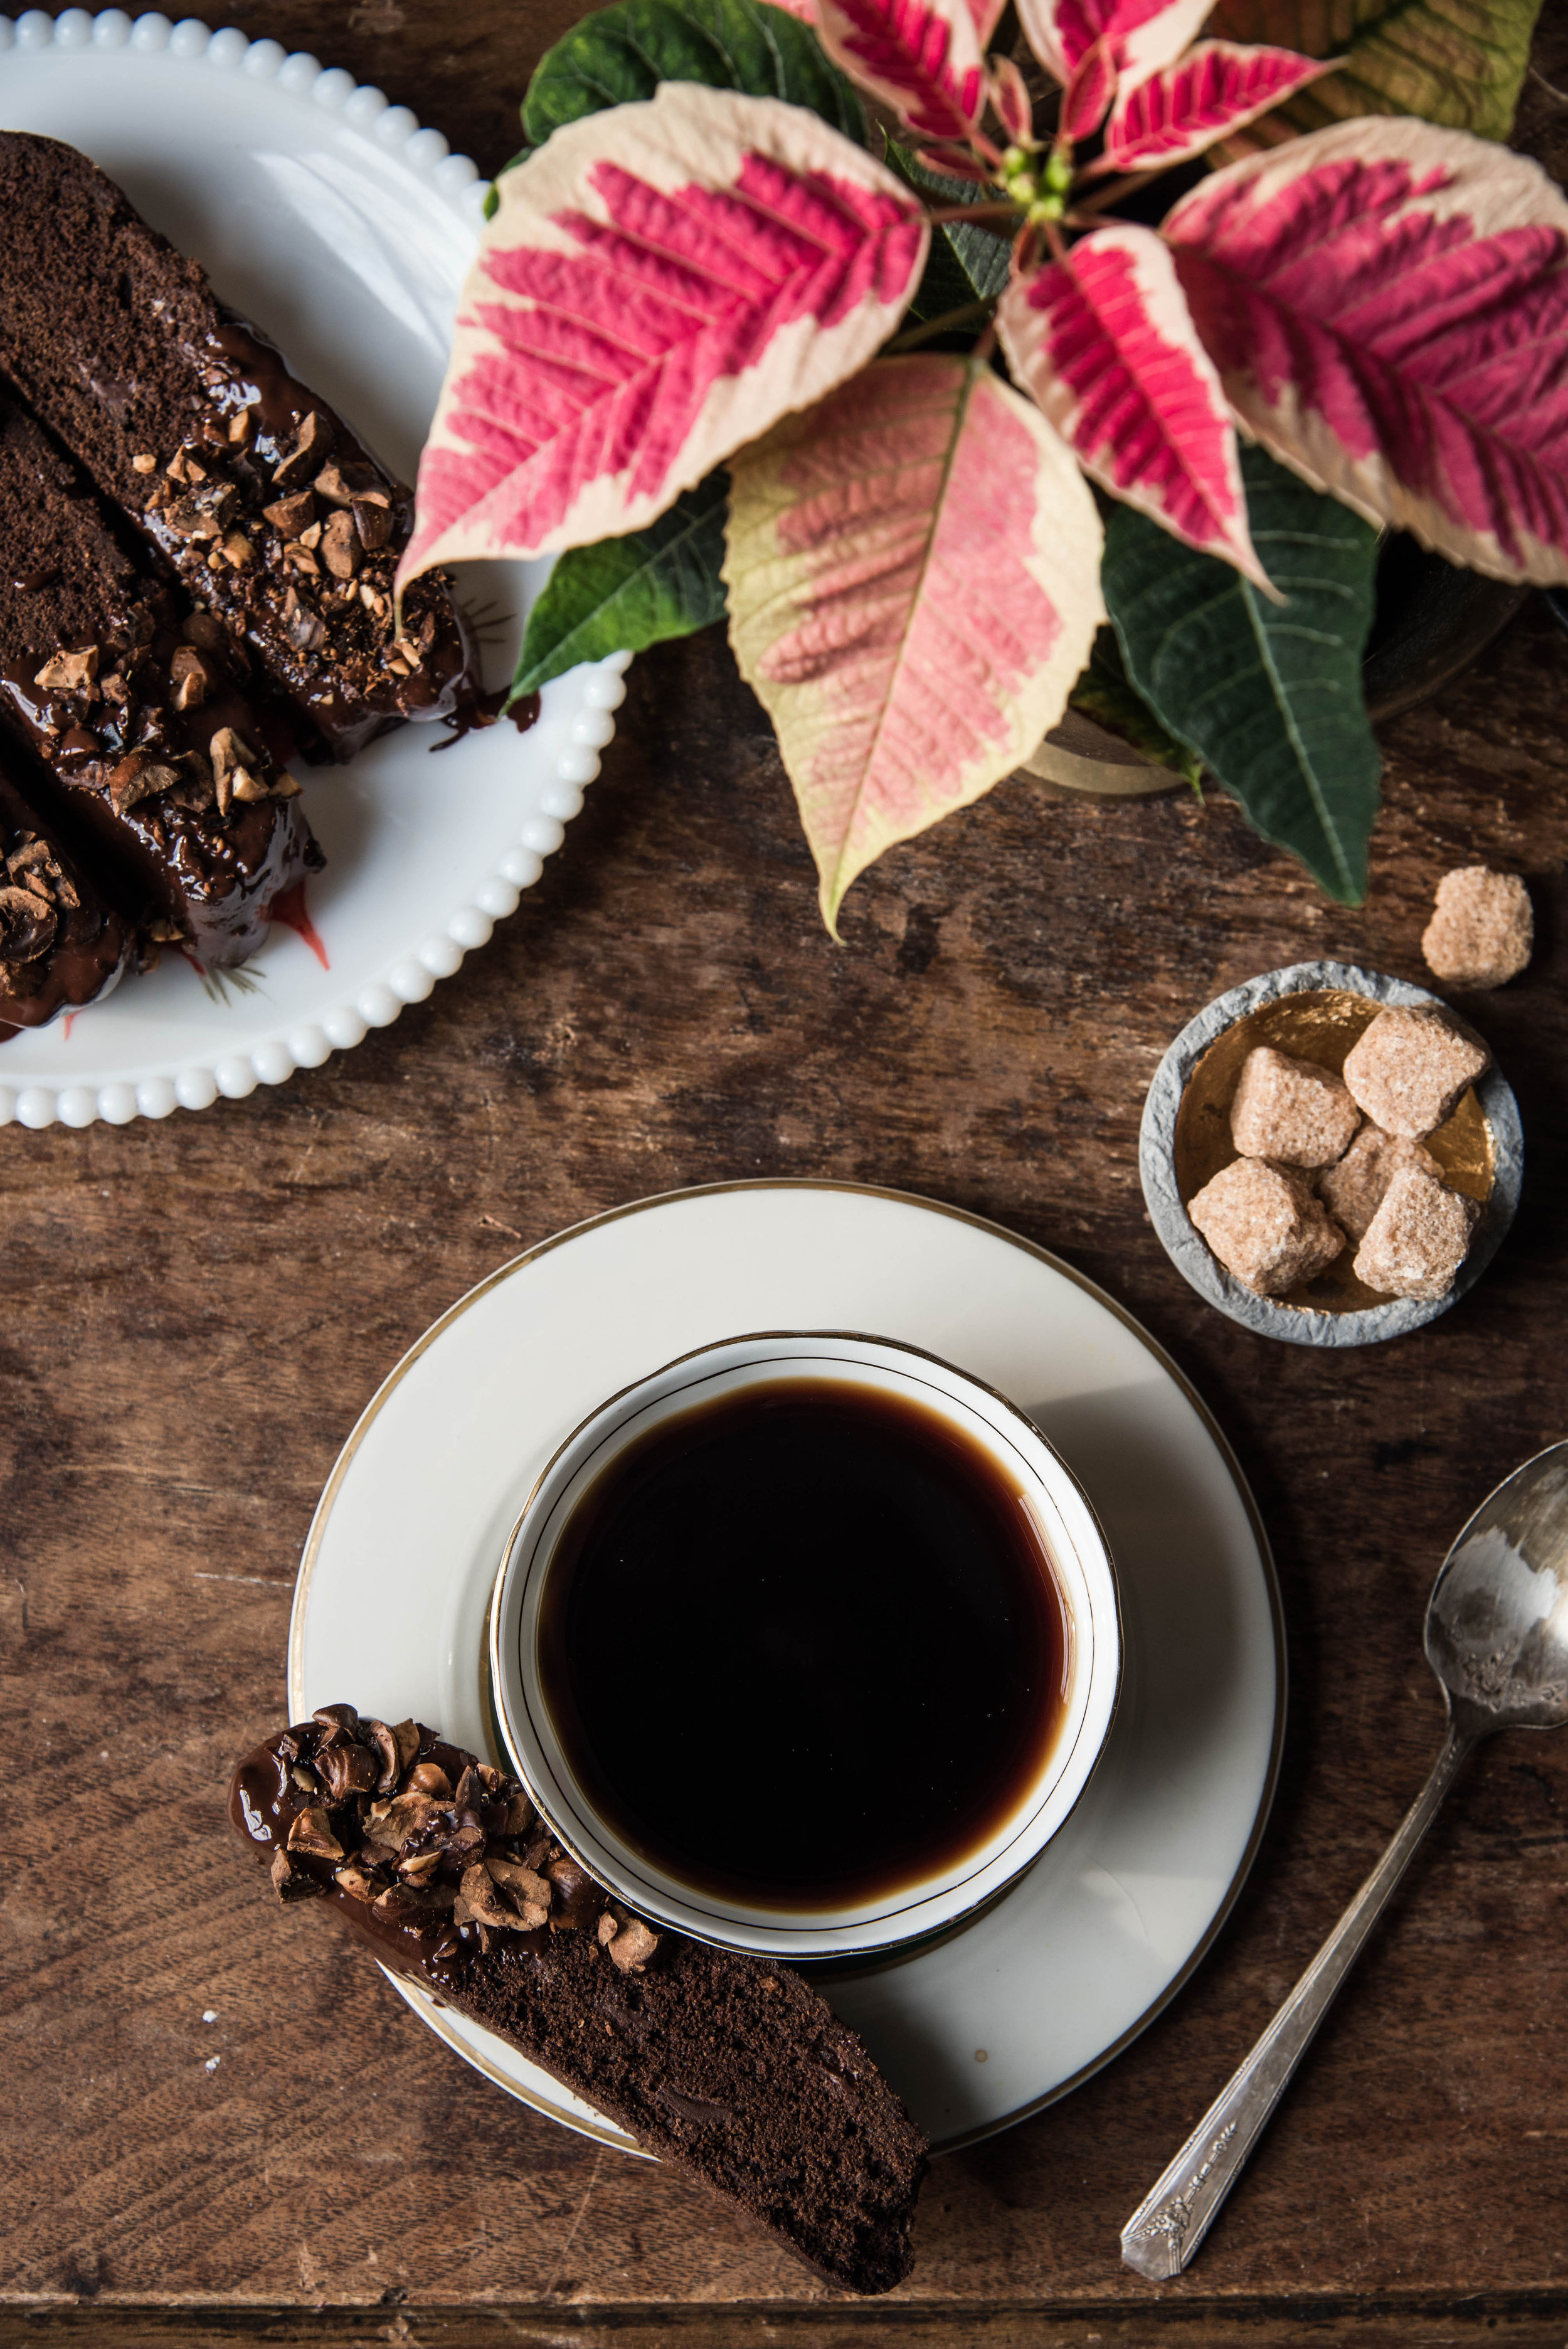 ROSE & IVY Journal Holiday Baking Double Chocolate Biscotti Dipped in Hazelnuts